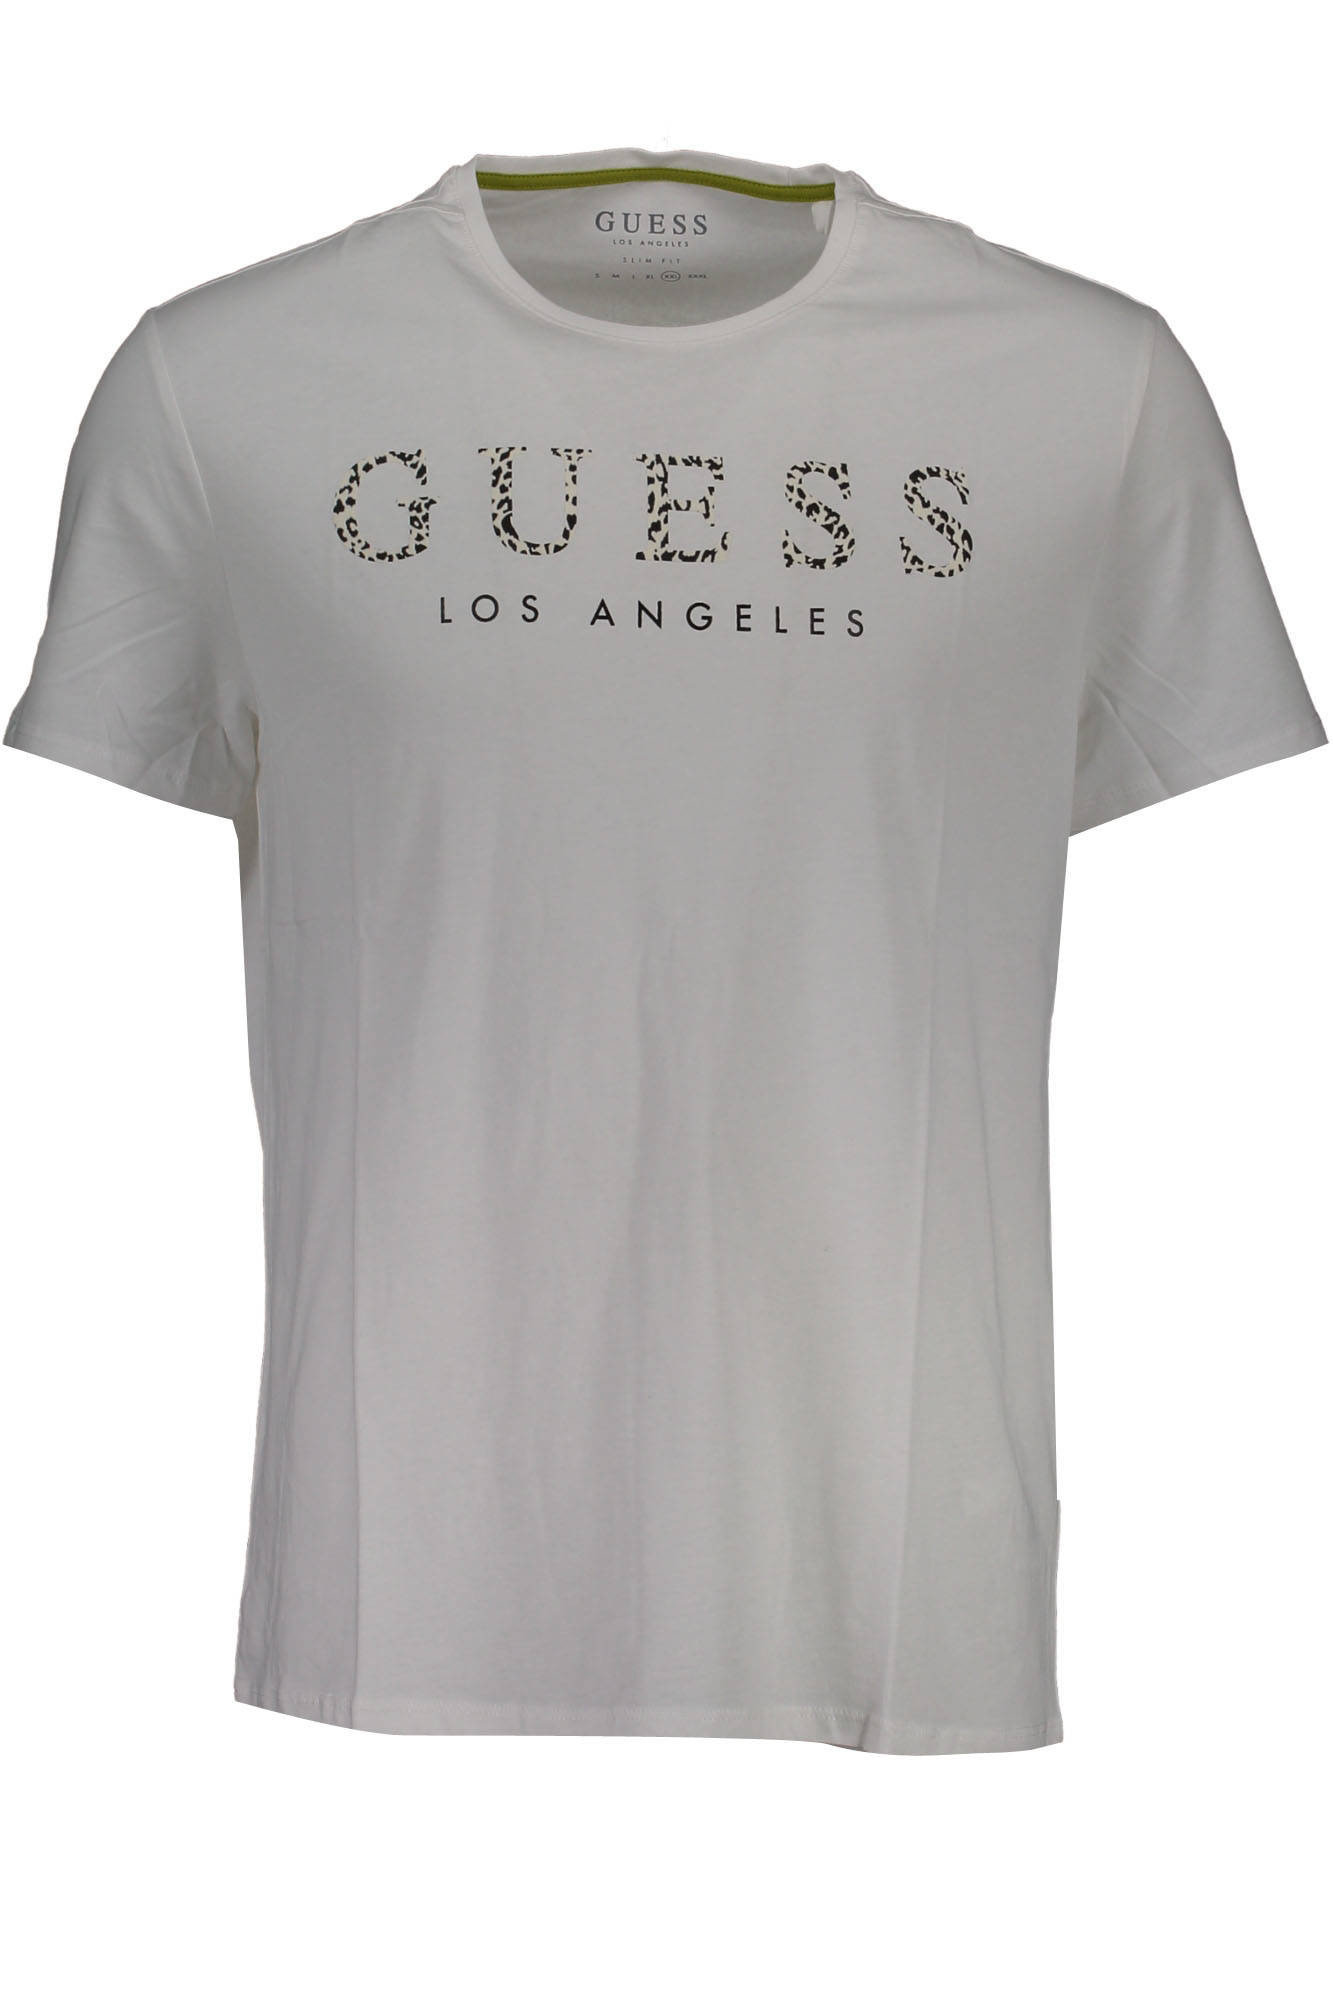 competitive price 9ca22 5d143 WH2-M73I37I3Z00 A000 Guess Jeans T-Shirt Uomo Ingrosso ...